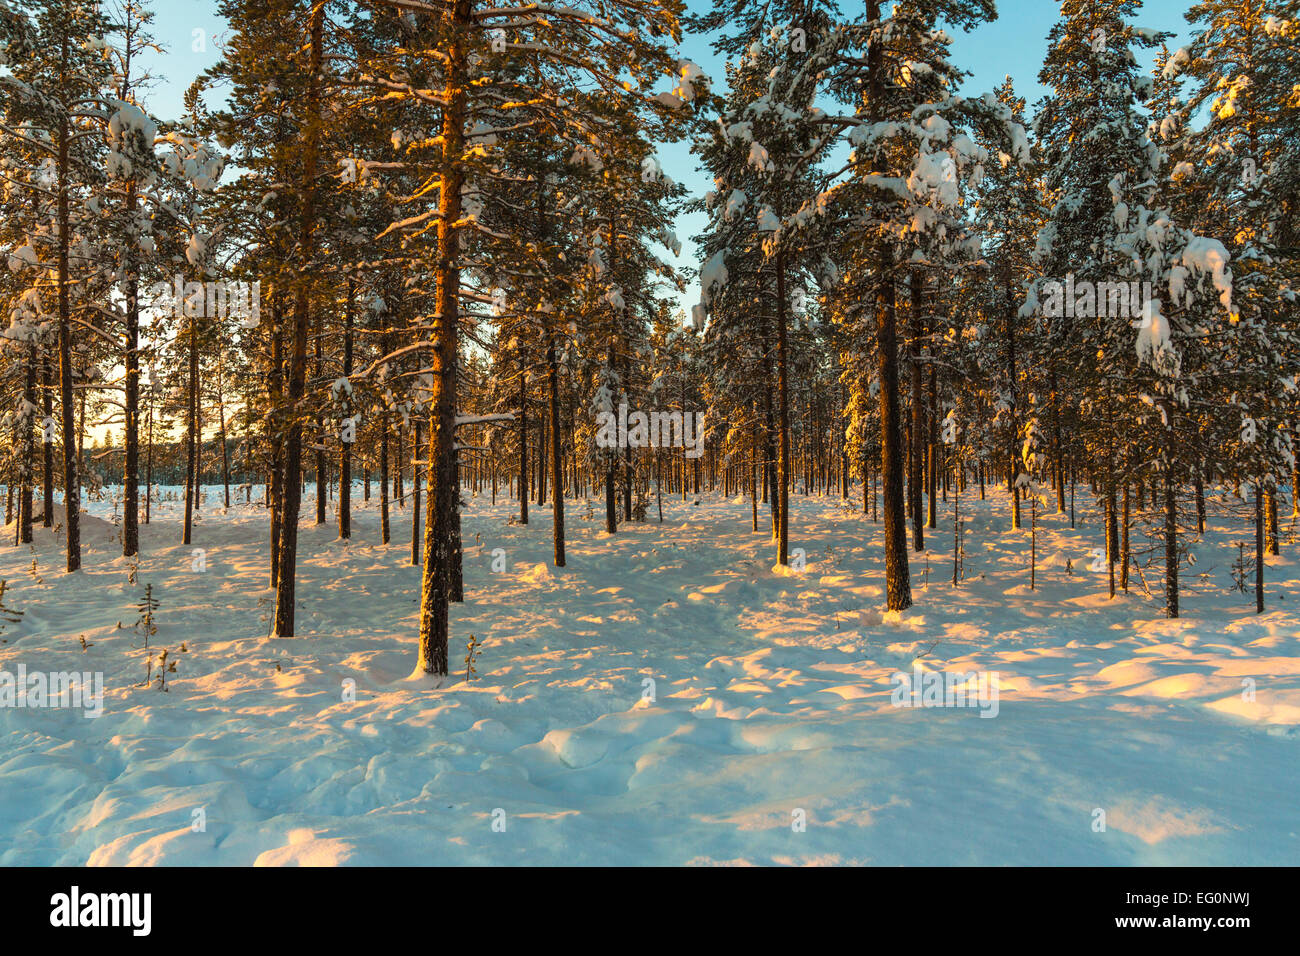 Forest with snowy trees in afternoon light, Gällivare Sweden - Stock Image